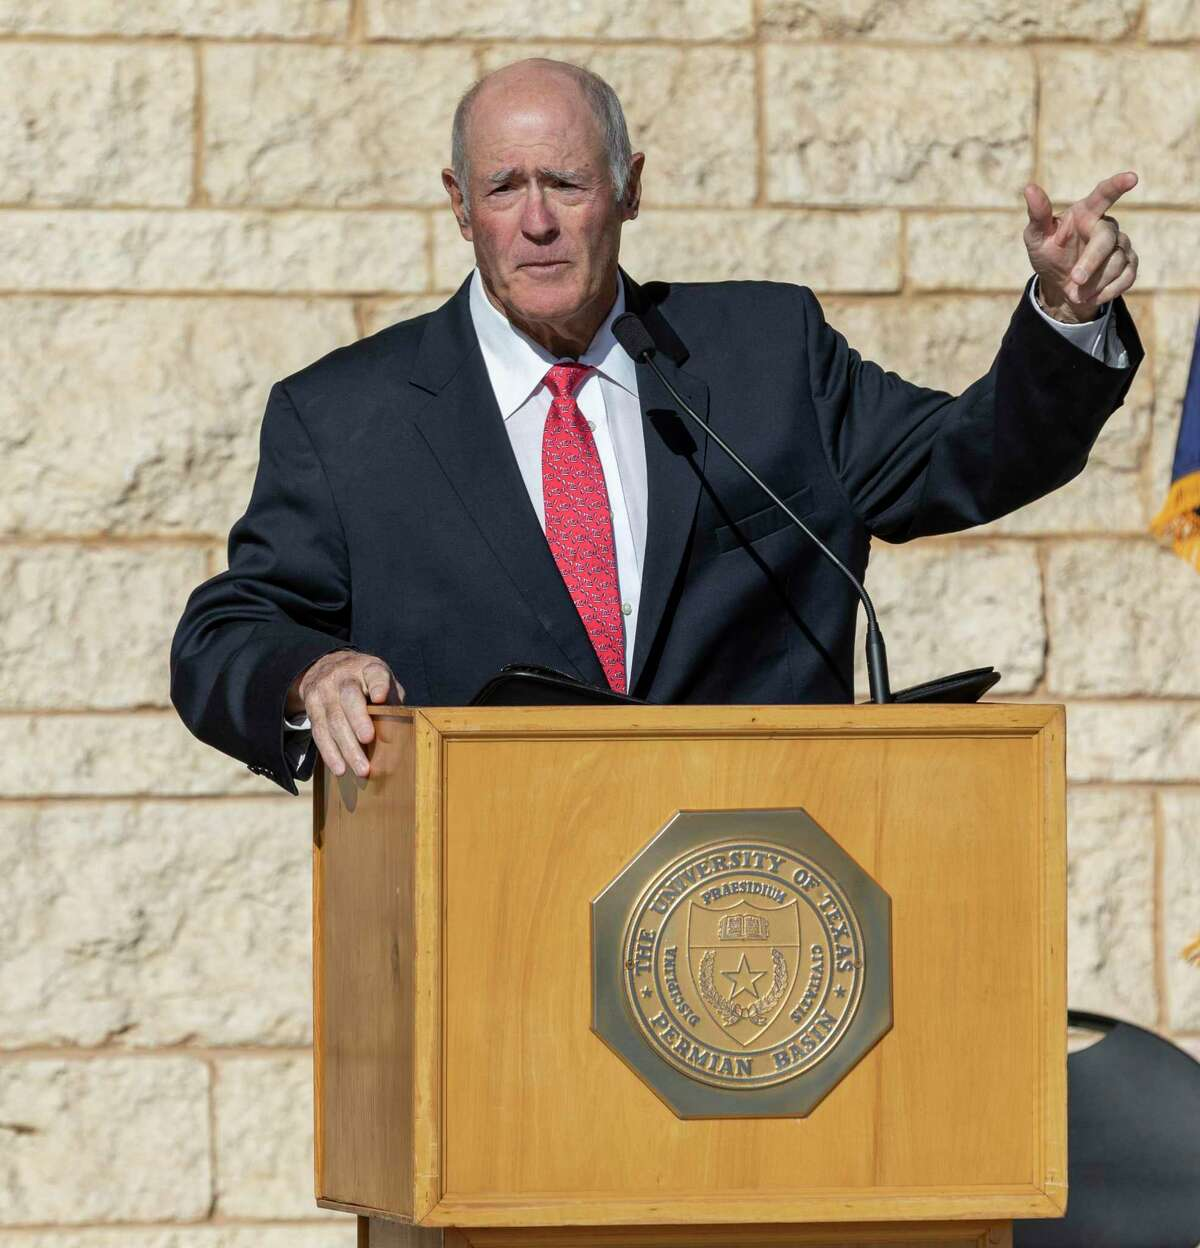 State Senator Kel Seliger speaks at the grand opening for the Engineering Building on Tuesday, Oct. 22, 2019 at the UTPB Midland campus. Jacy Lewis/Reporter-Telegram